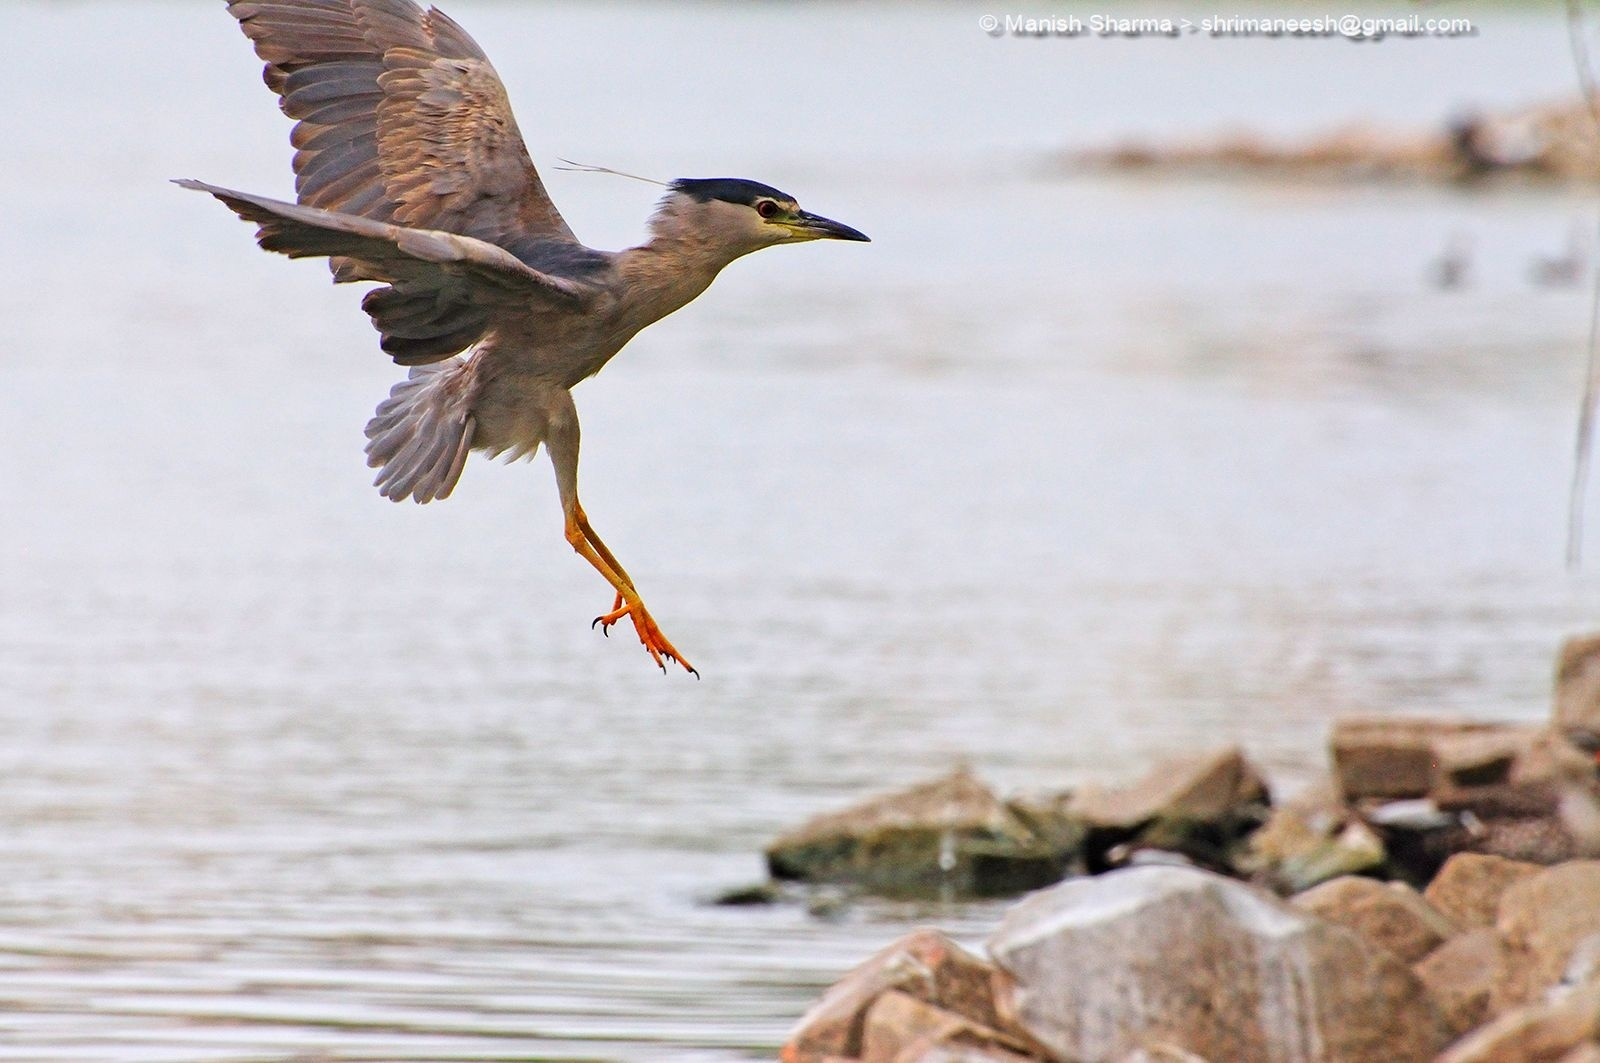 Black crowned night heron while landing...Scientific name: Nycticorax nycticorax by Maneesh Sharma